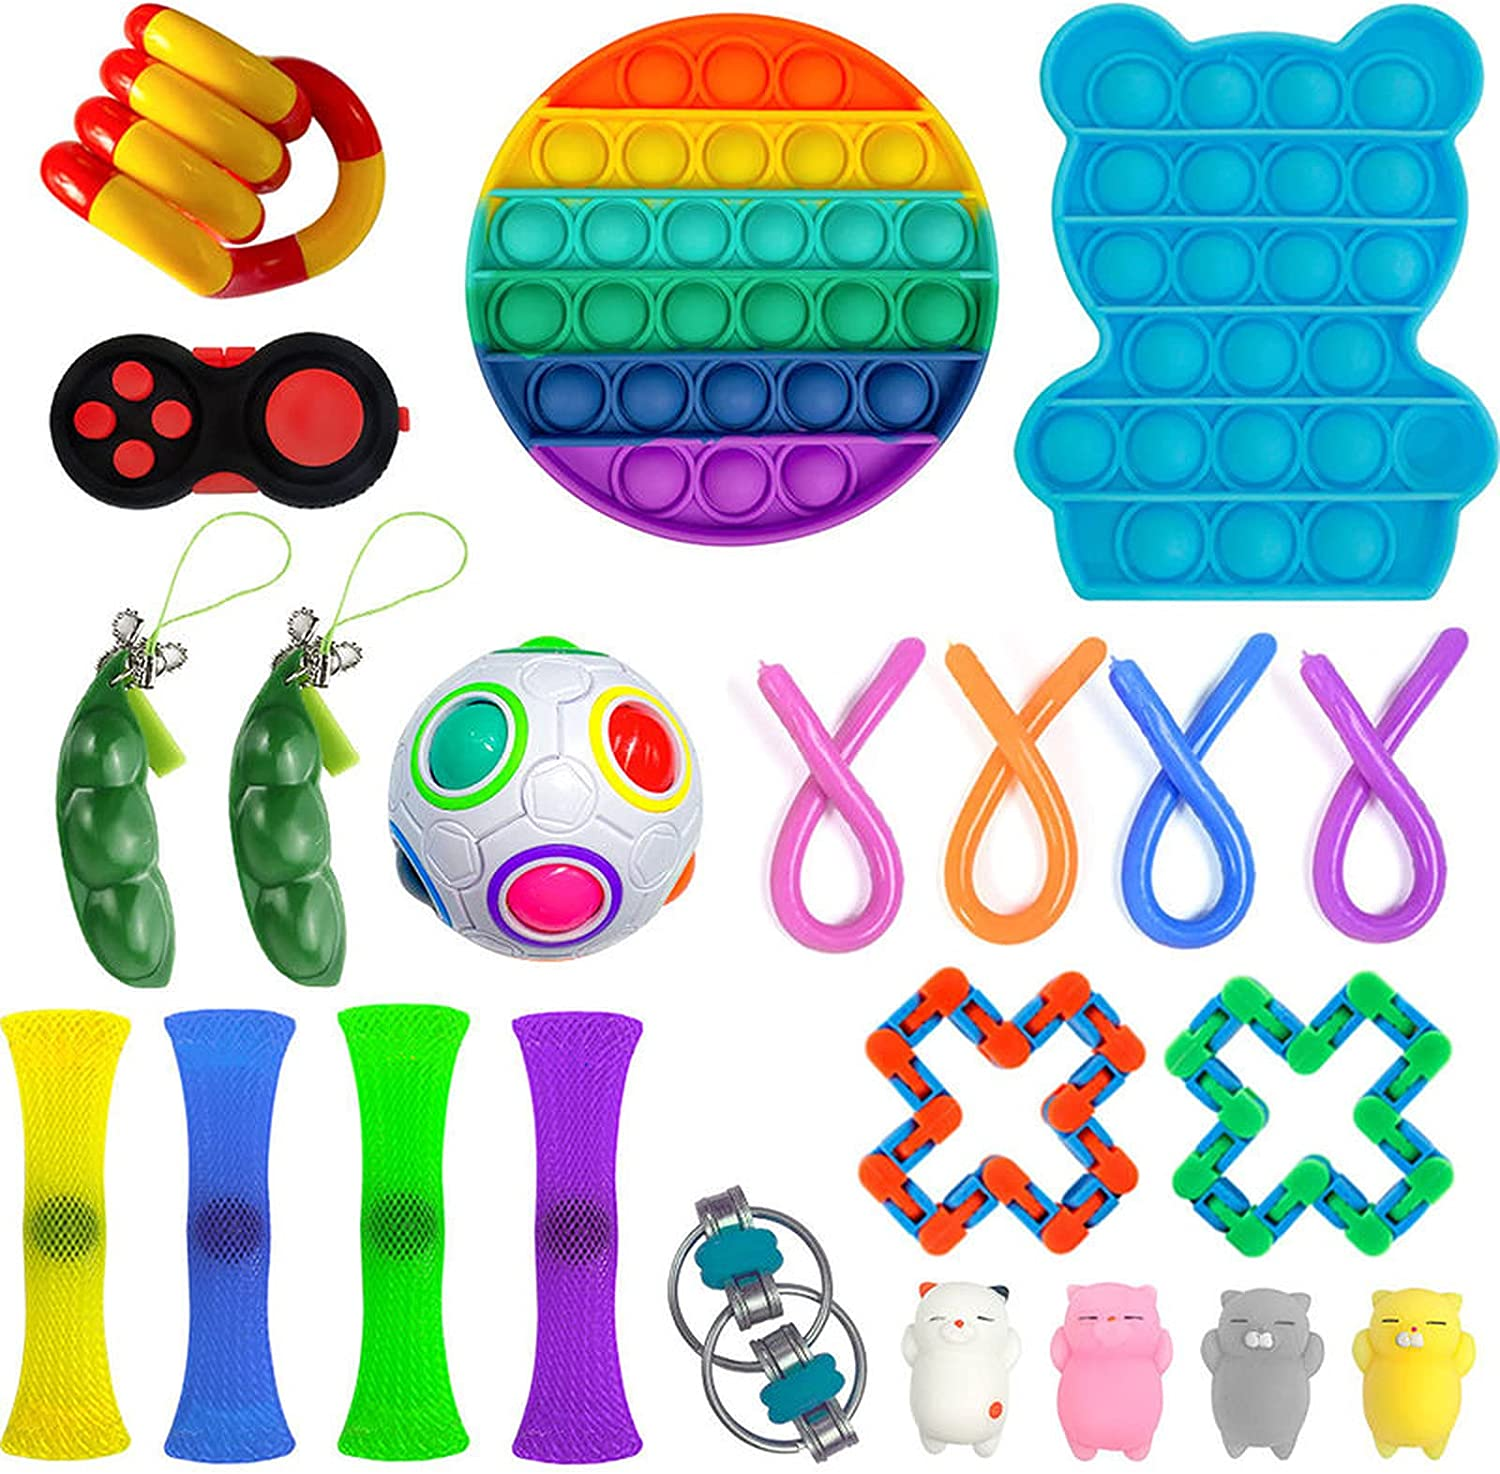 Financial sales sale Sensory Toy Set Waterproof 2021 Silicone Reli can You Material Help